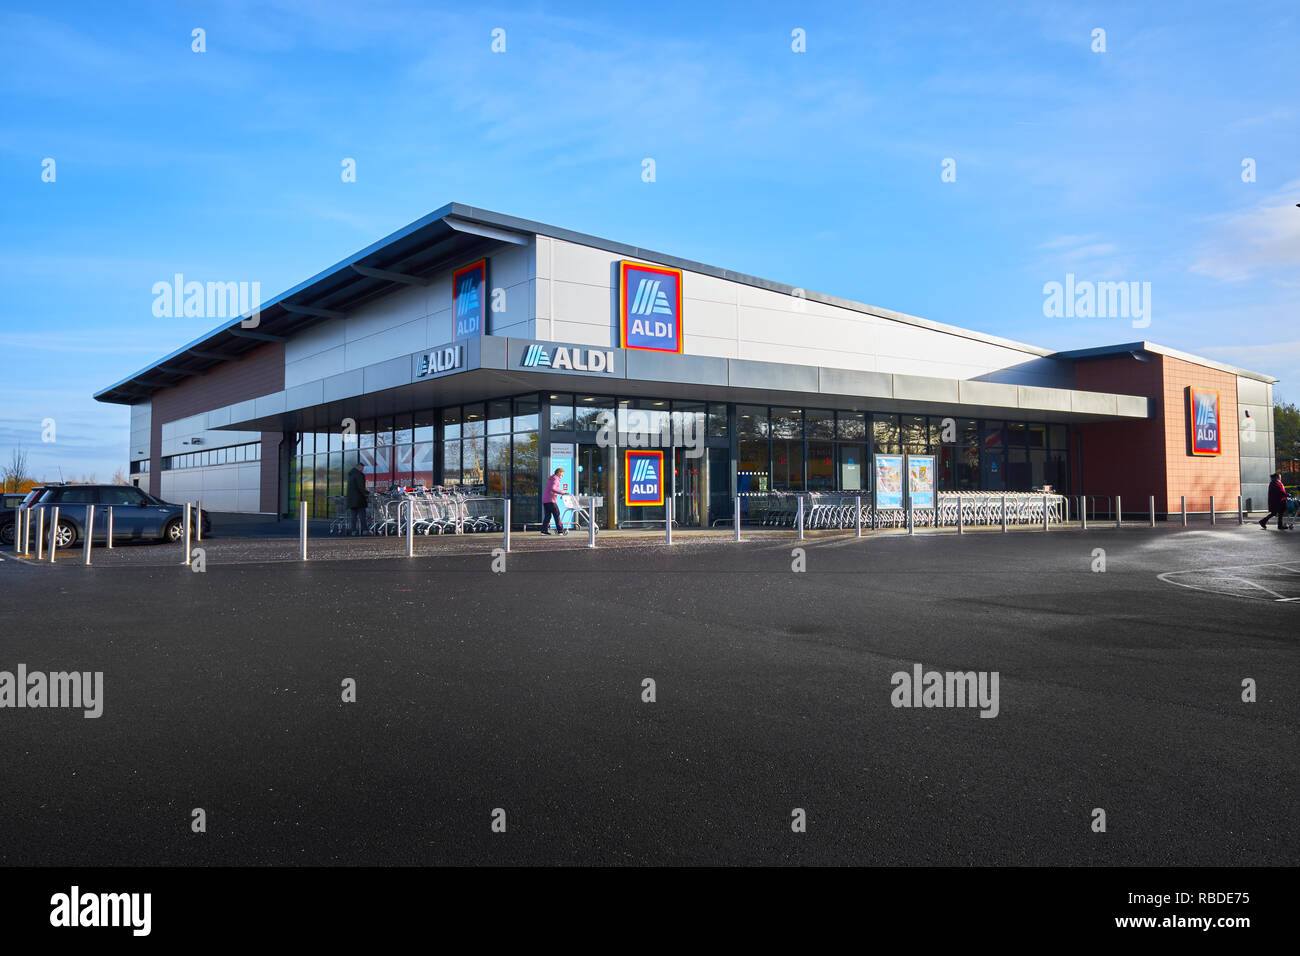 Aldi store at Saxon Way West, Corby, England, on a sunny winter day. - Stock Image